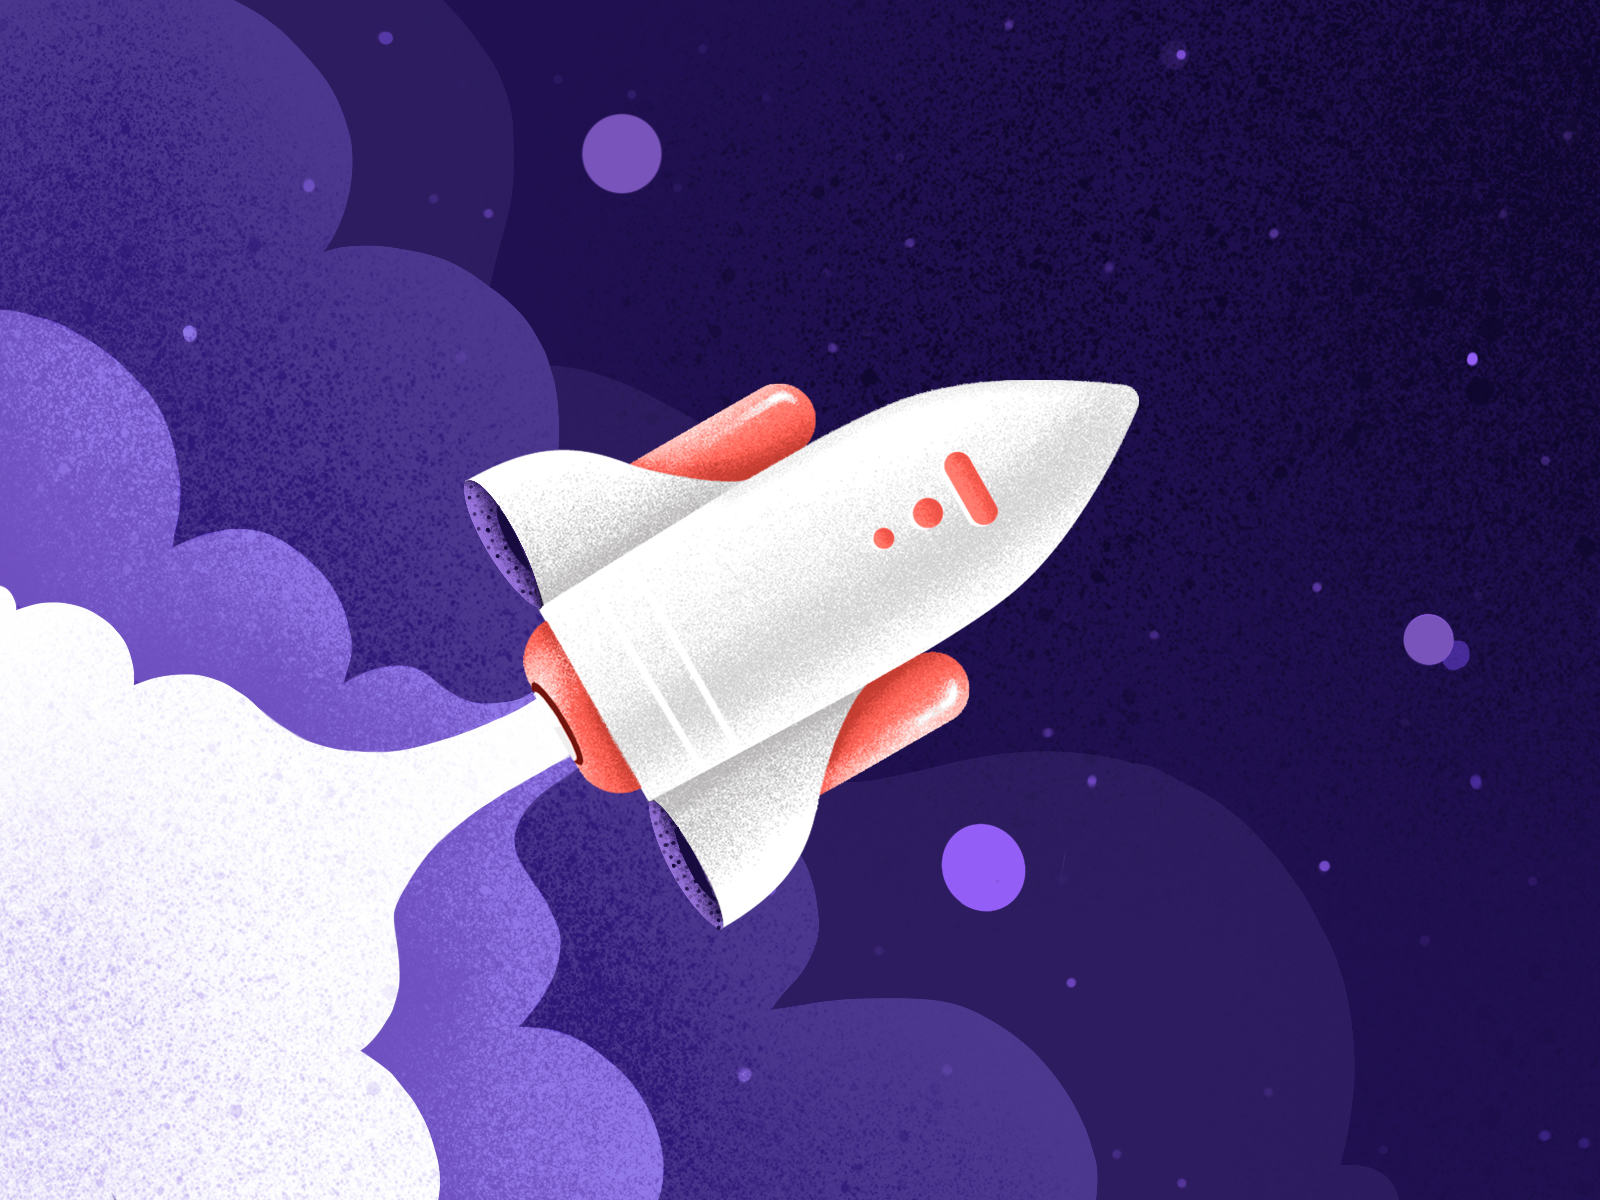 Spaceship by 𝑮𝒖𝒈𝒂 𝑩𝒊𝒈𝒗𝒂𝒗𝒂 on Dribbble